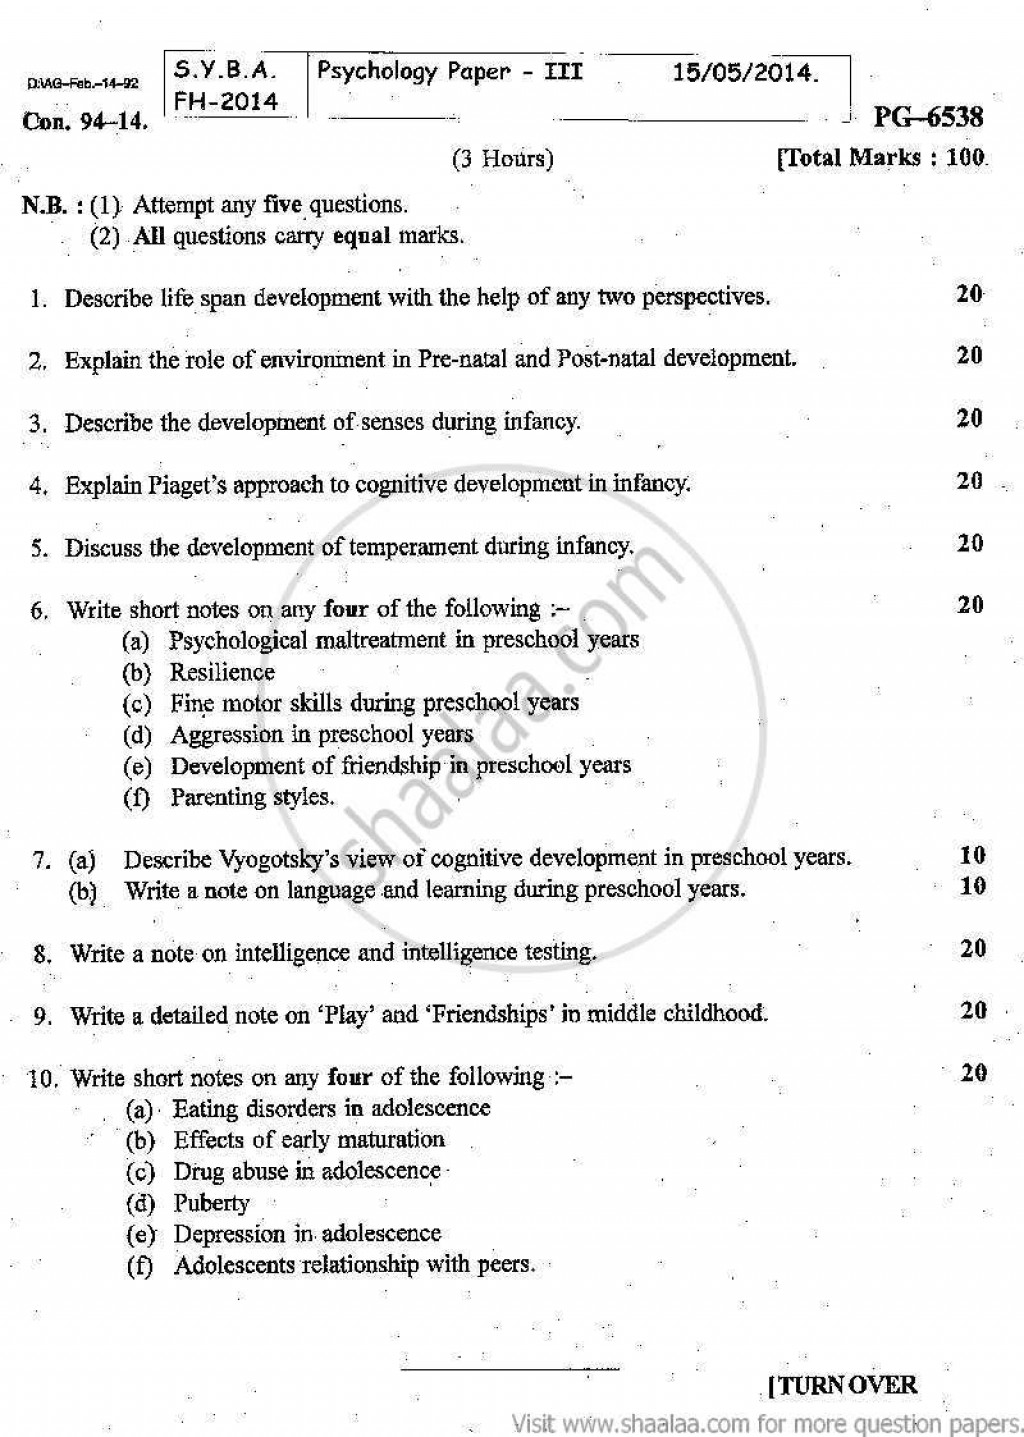 007 Developmental Psychology Essay Gender Bias Help Papers Atsl Ip Writing Service Topics Research Child Paper Rare Depression Large